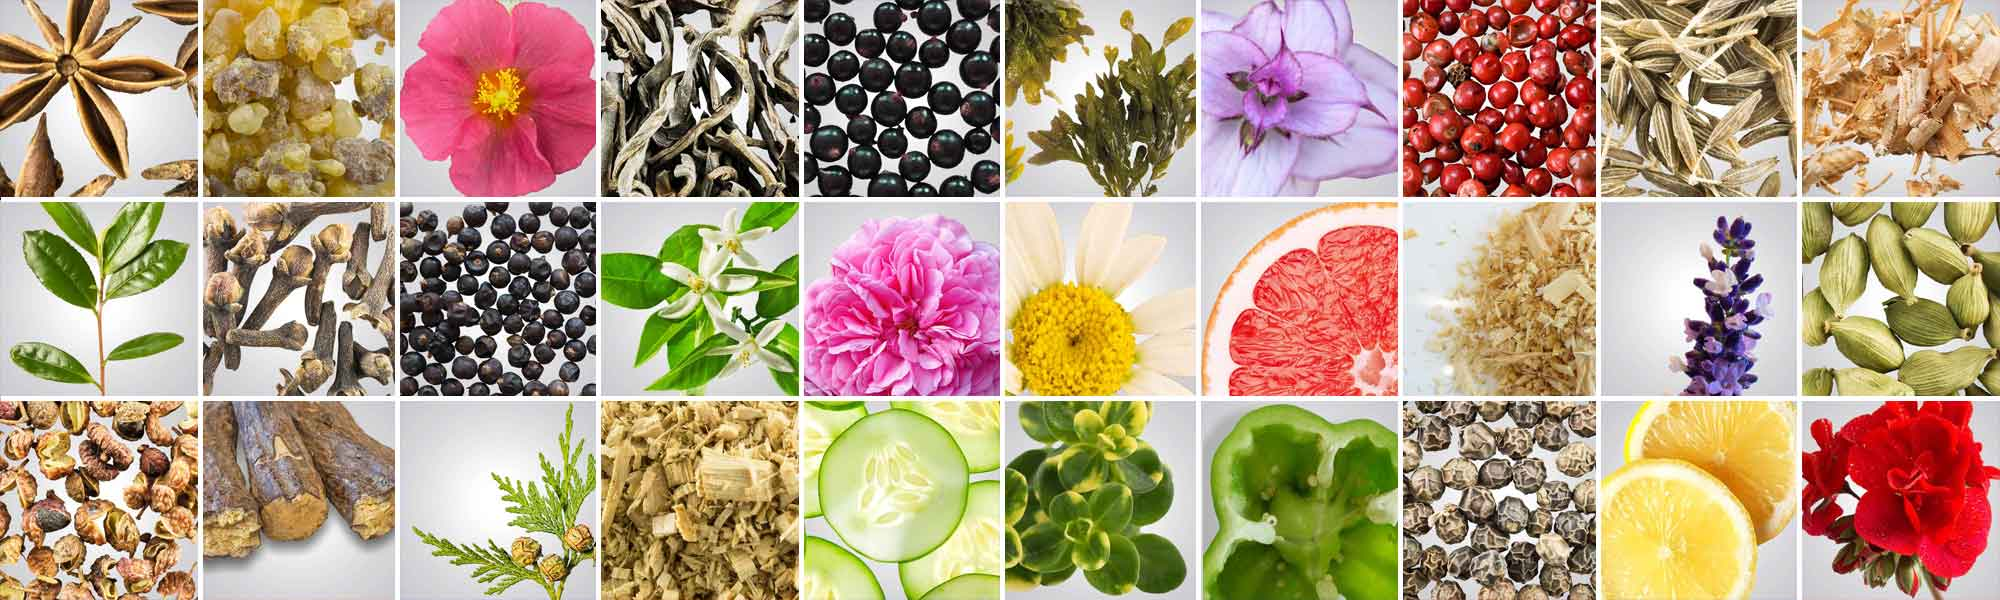 Collage of different ingredients found in Helio's scents